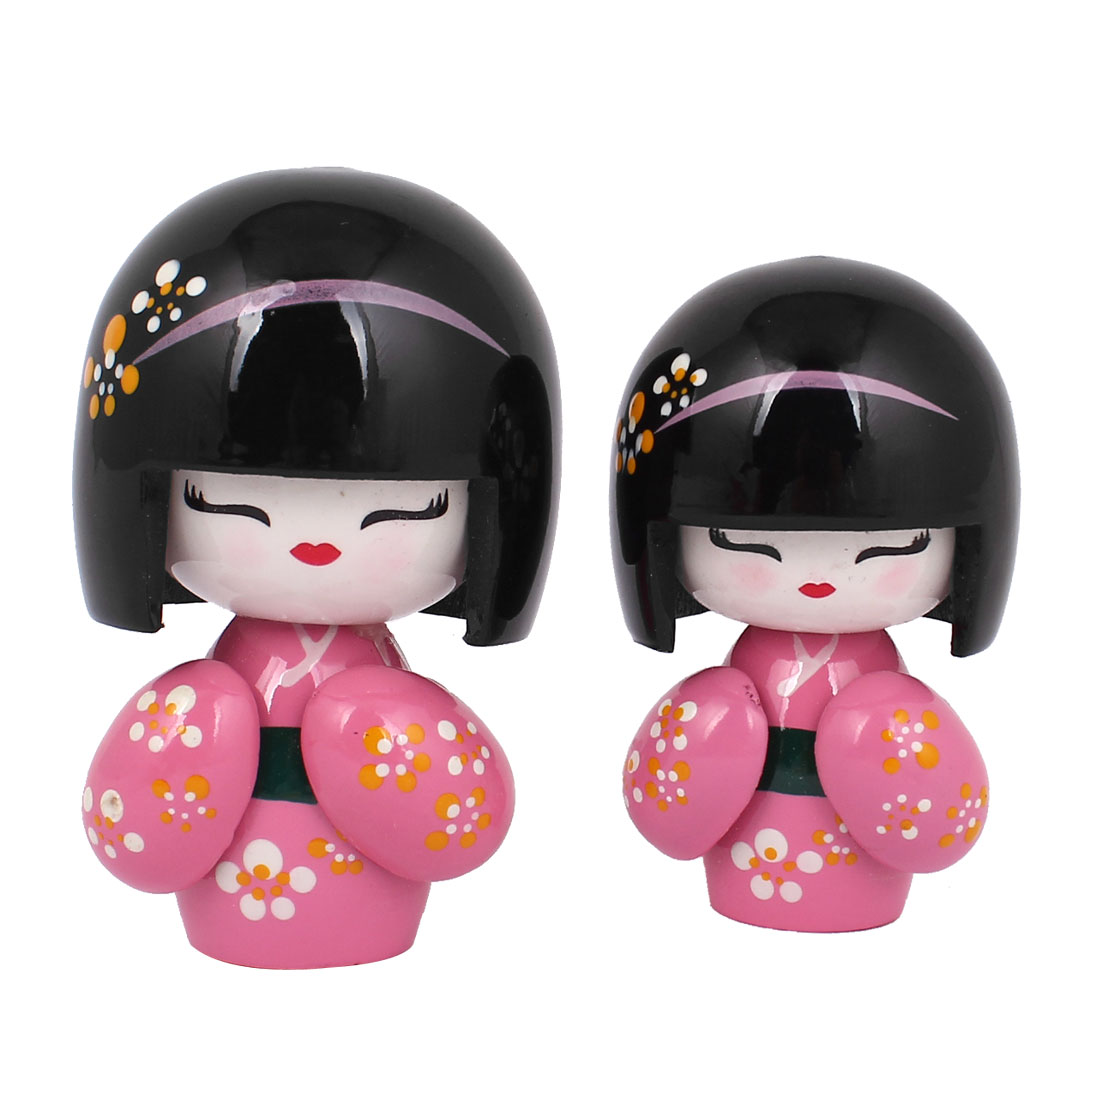 2 in 1 Pink Black Wooden Japanese Kimono Kokeshi Doll w Carved Floral Decor